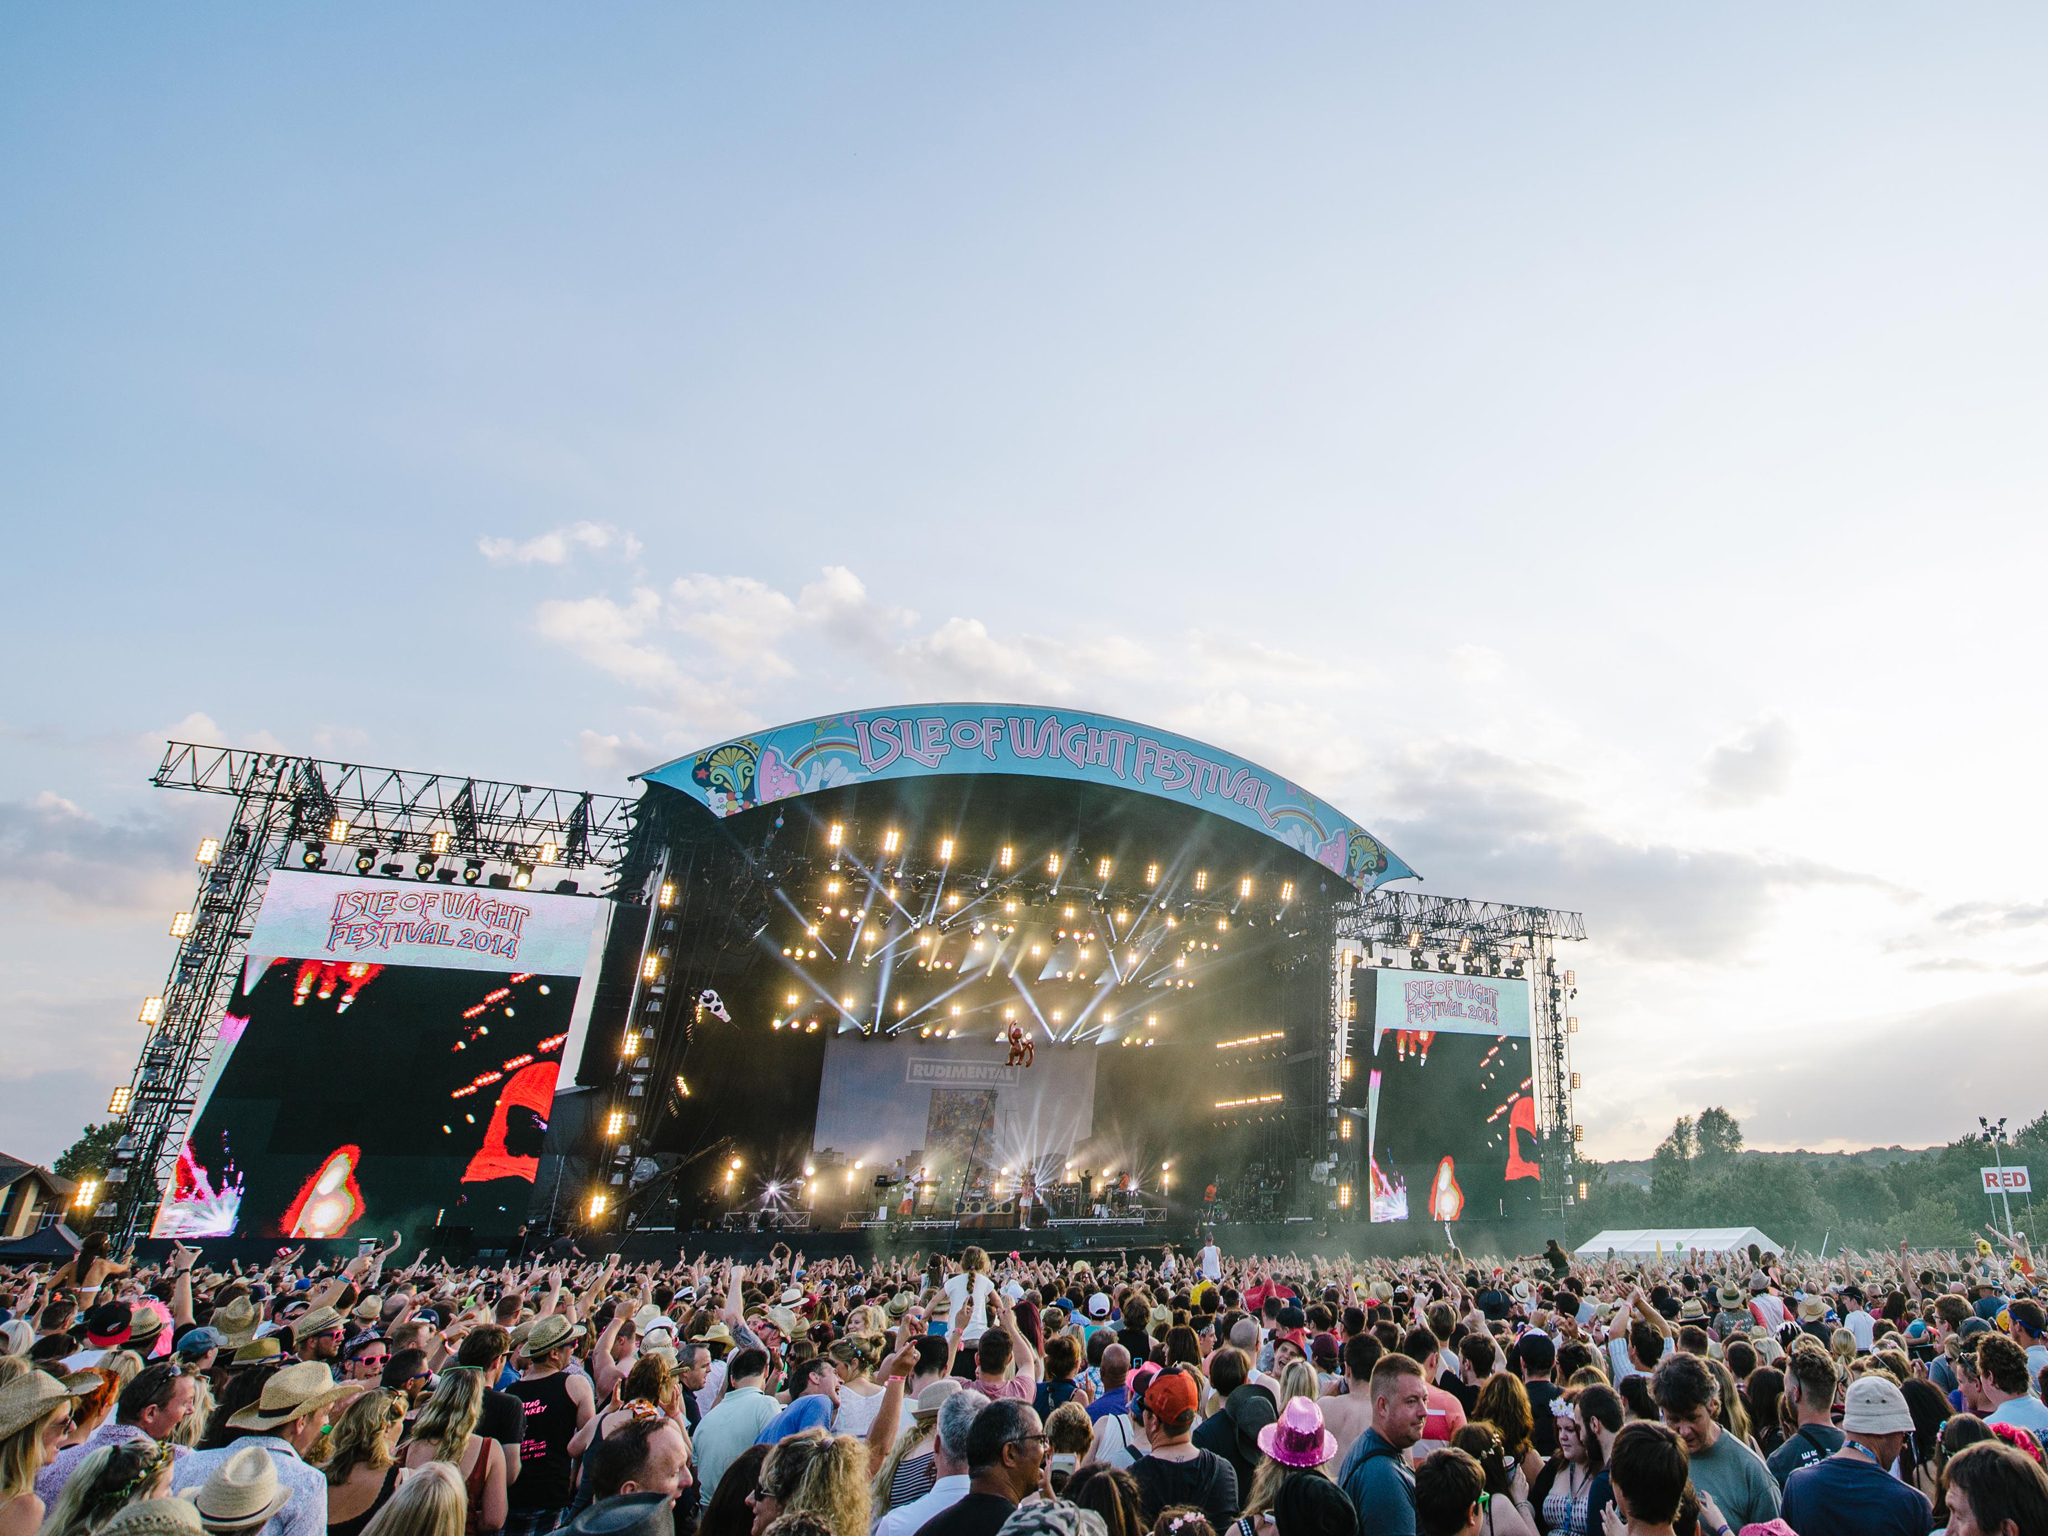 Win a pair of VIP tickets to The Isle of Wight Festival 2015